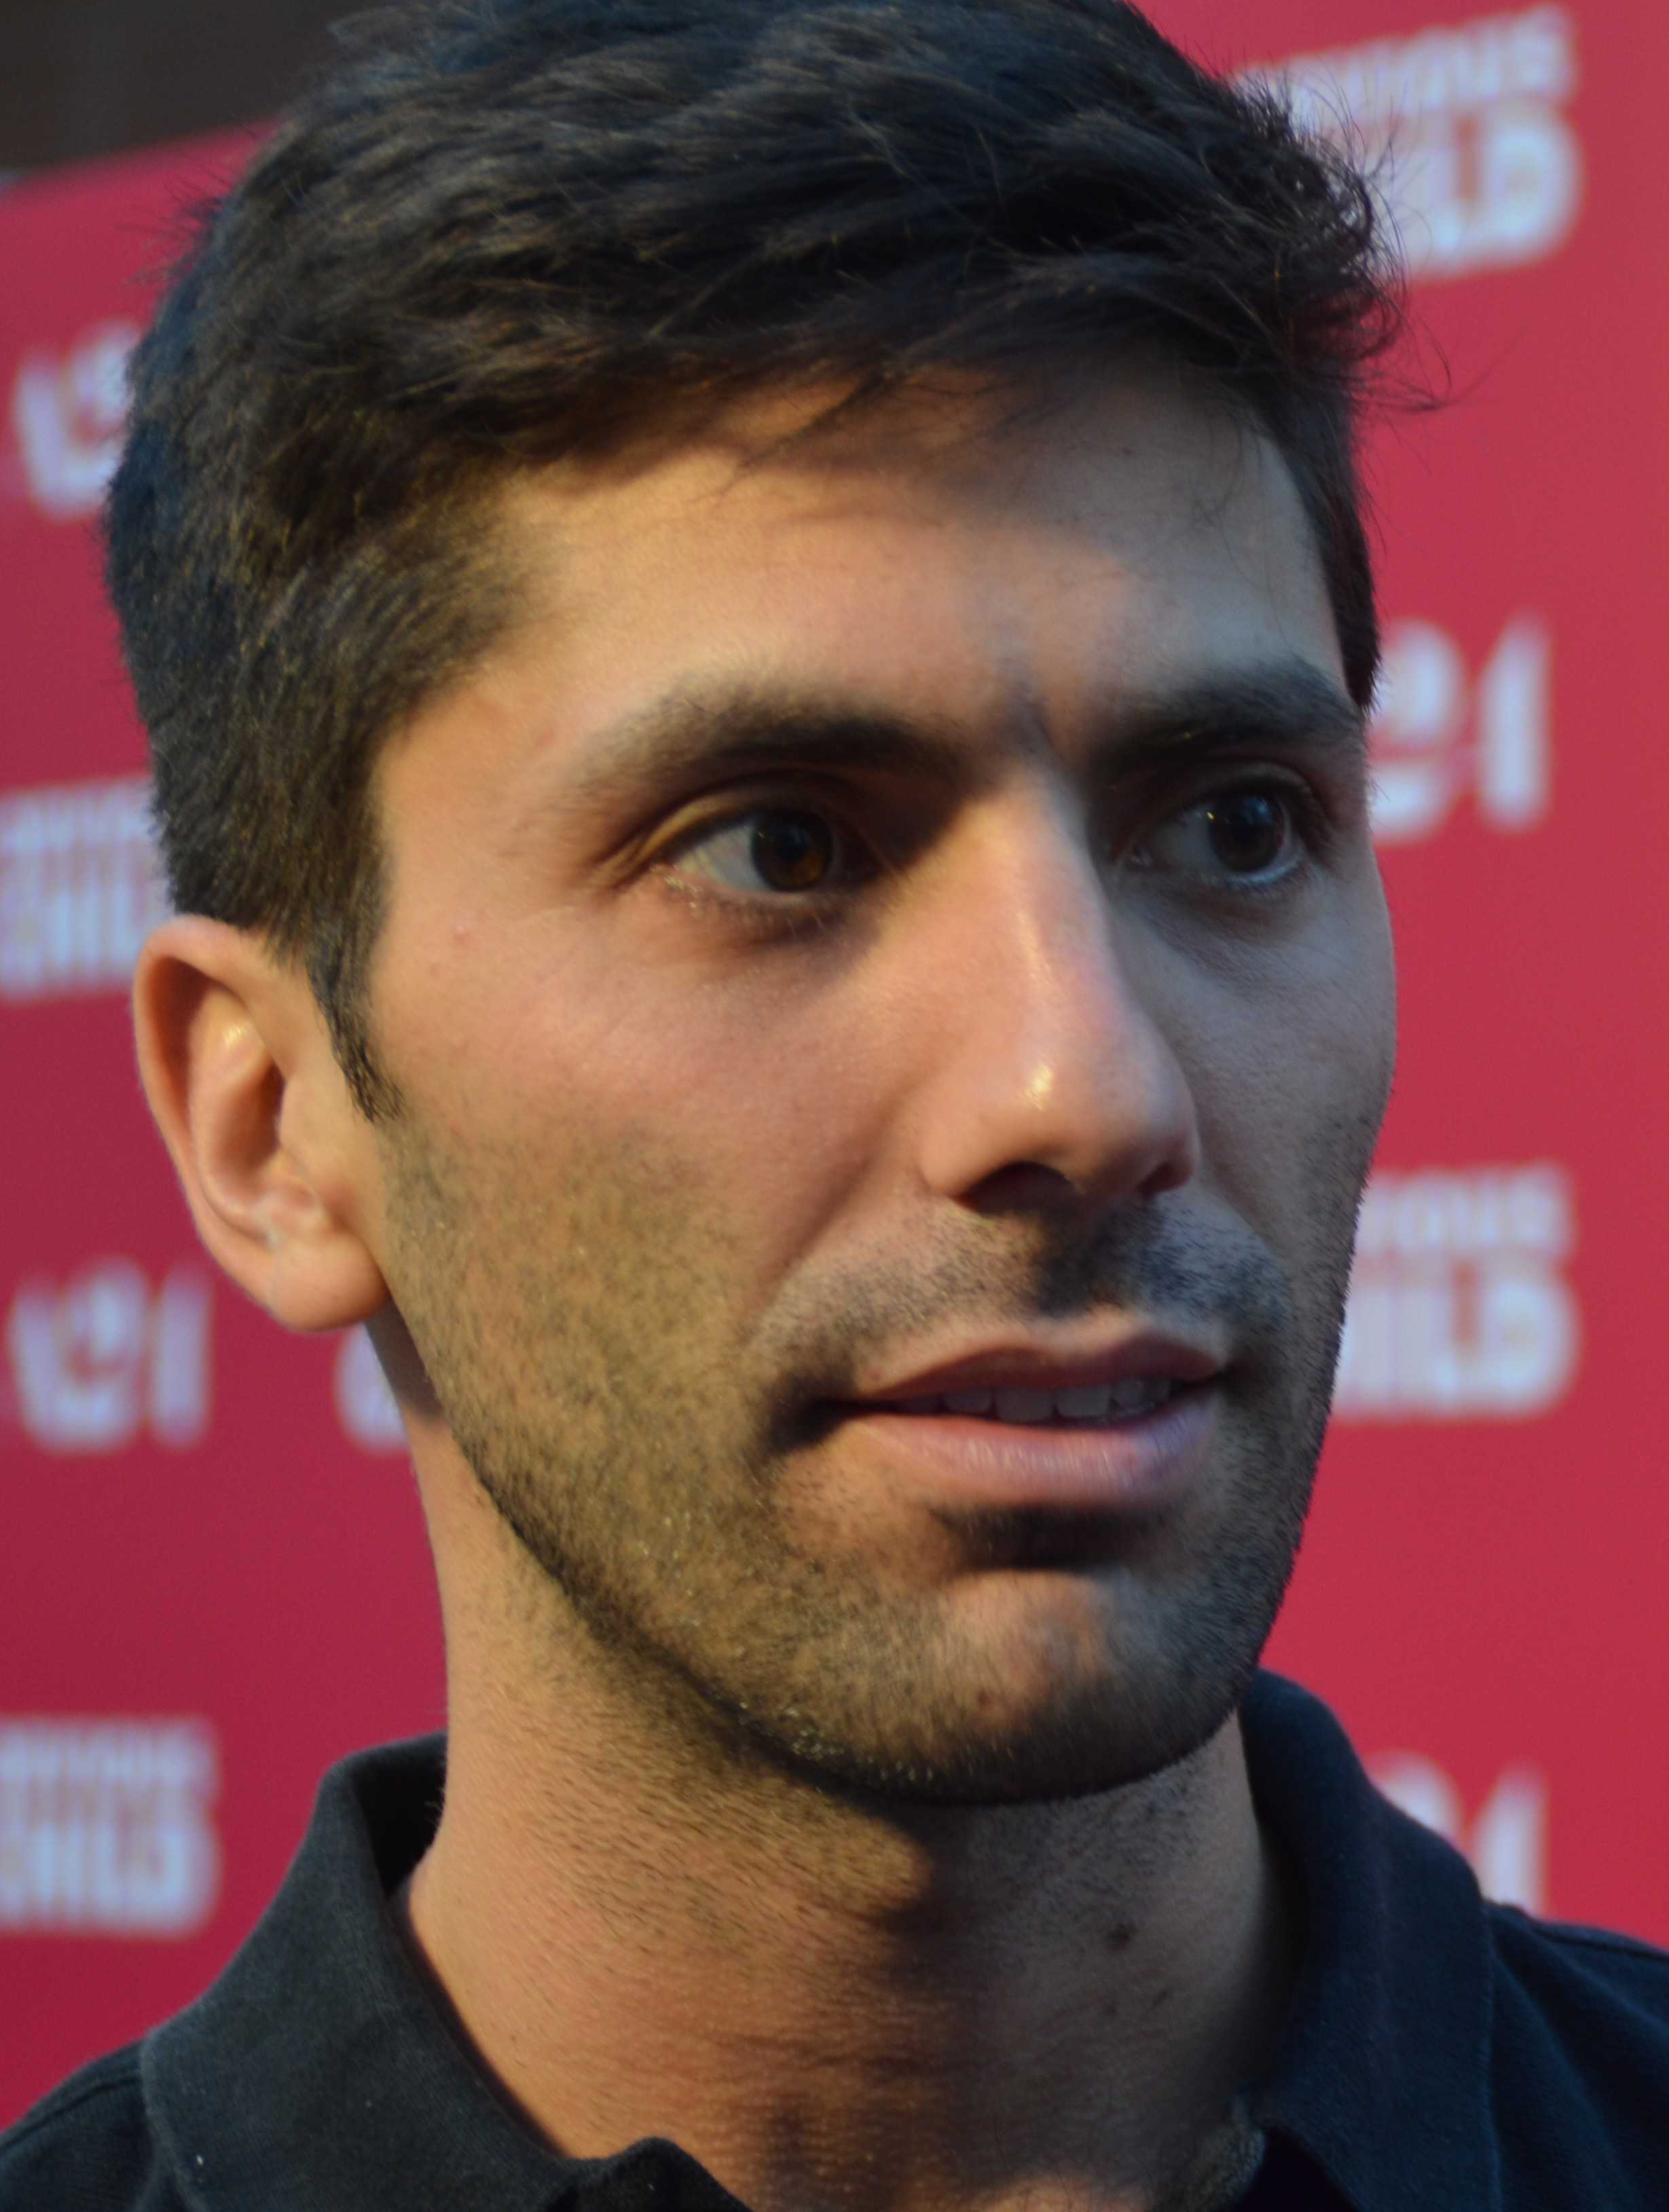 Nev Schulman, host of MTVs Catfish and Suspect. Schulman co-hosts Suspect with iO Tillet Wright.